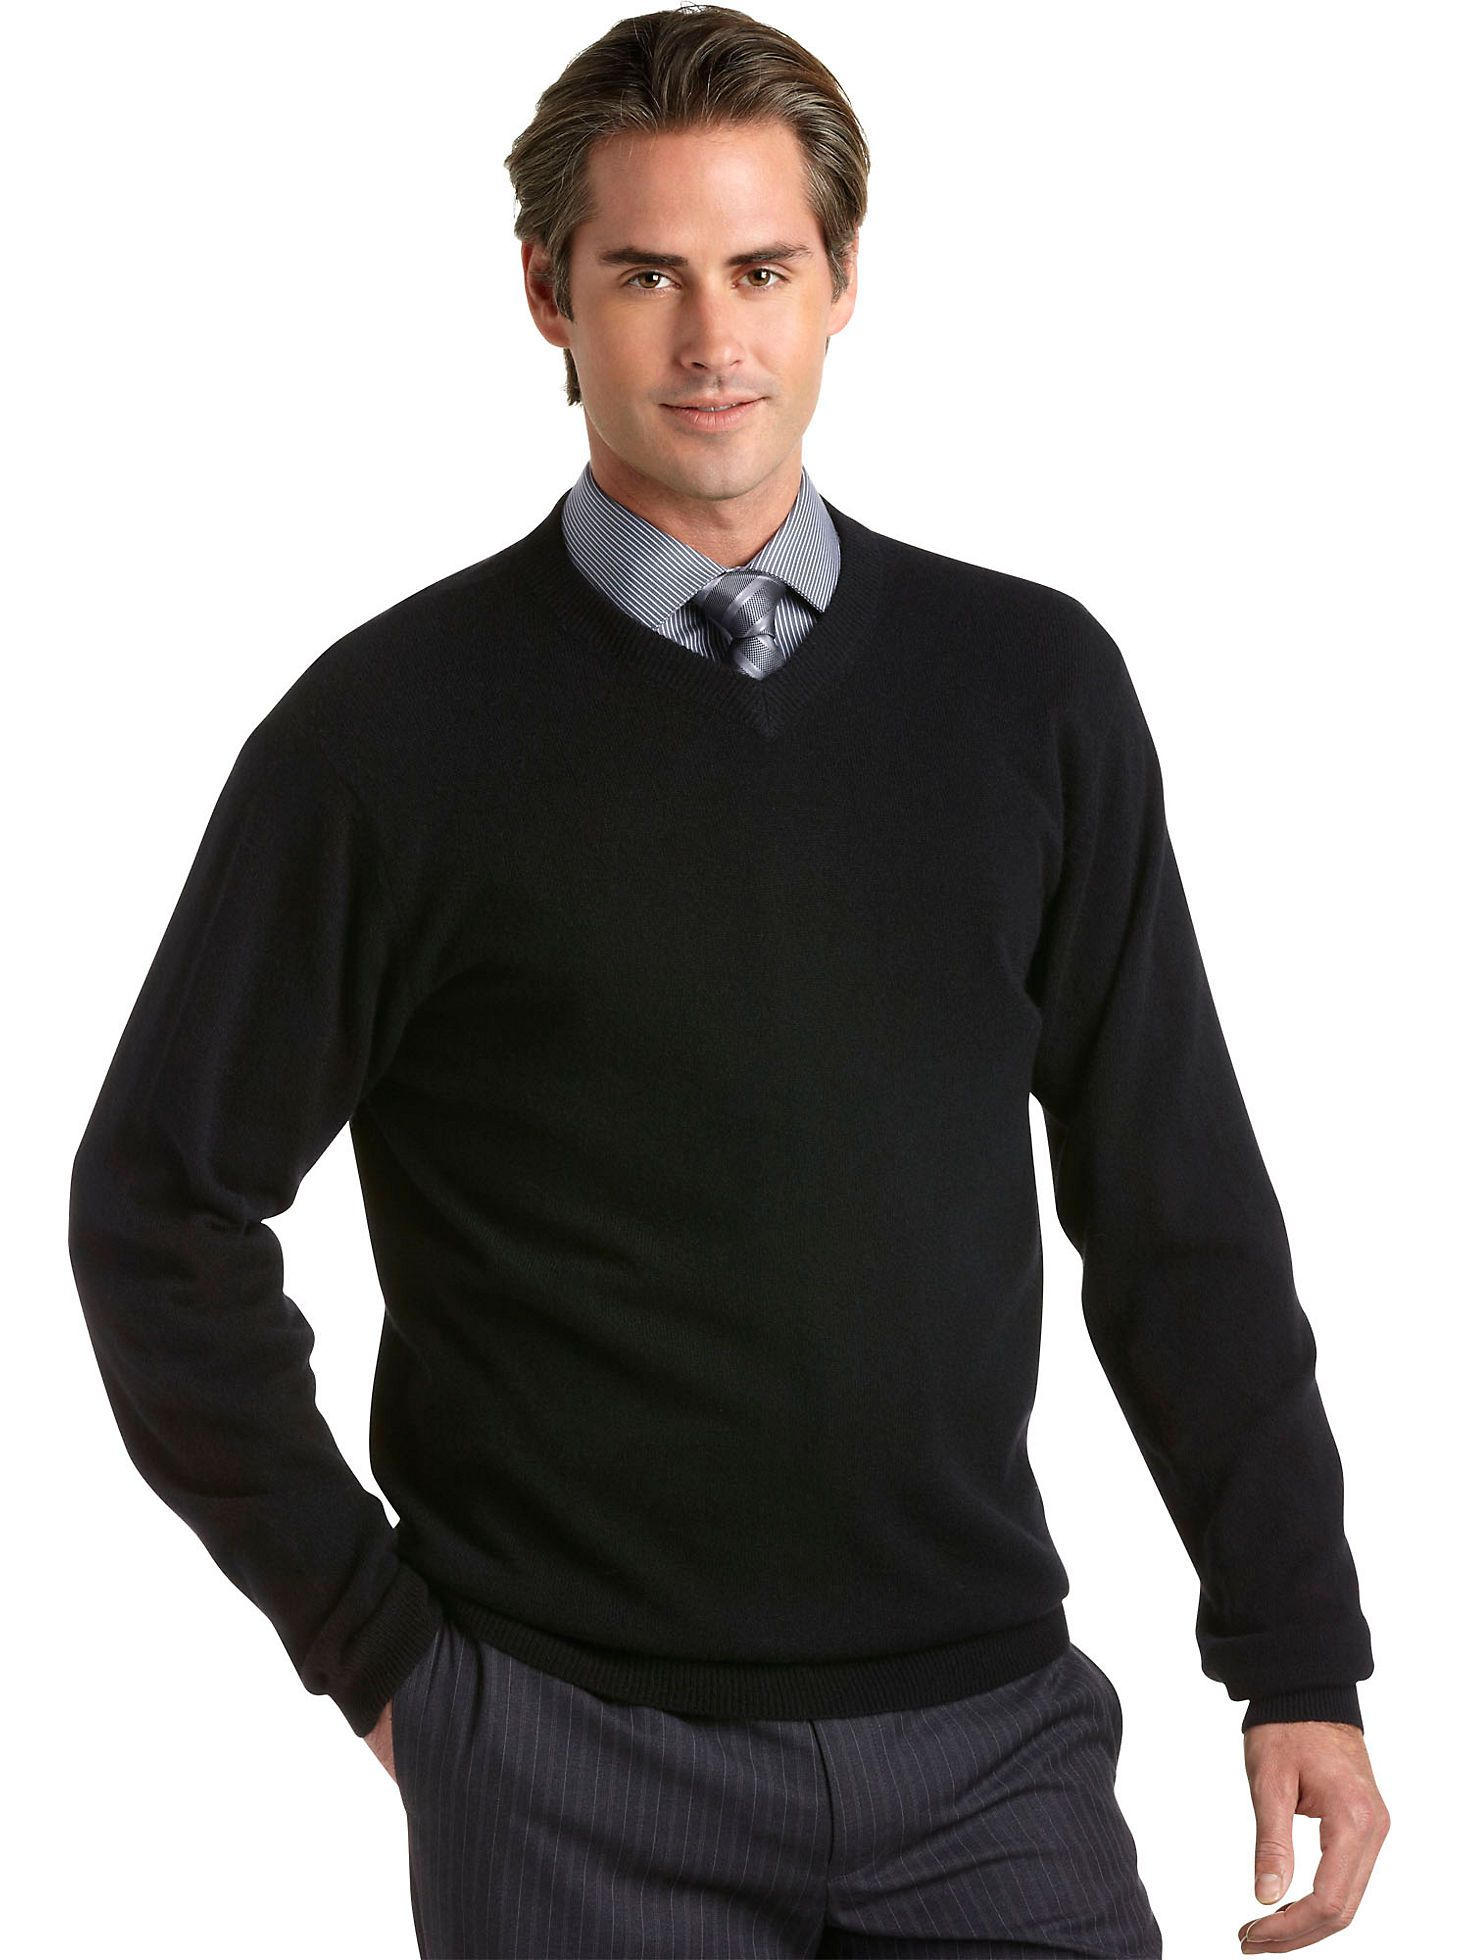 Sweaters & Vests - Pronto Uomo Forest Green Cashmere V-Neck ...